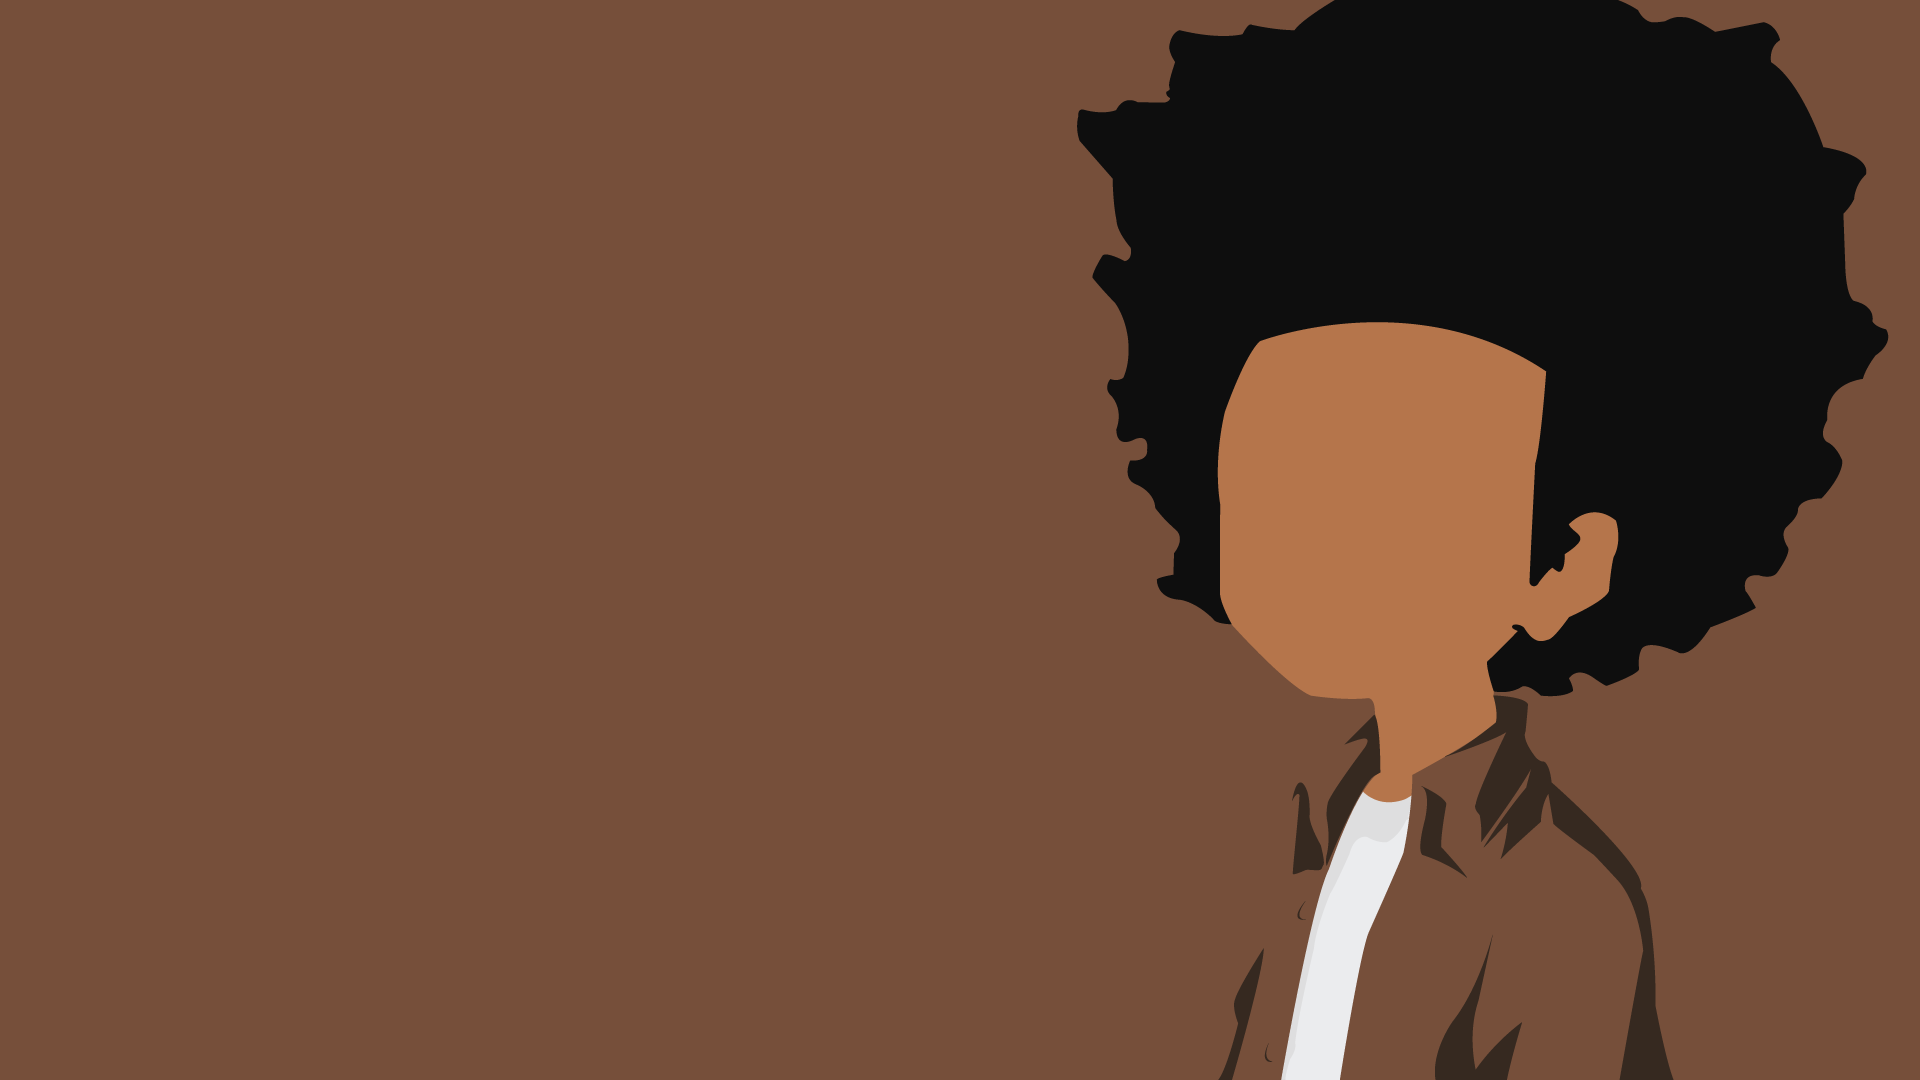 Huey Freeman The Boondocks Minimalist Hd Wallpaper